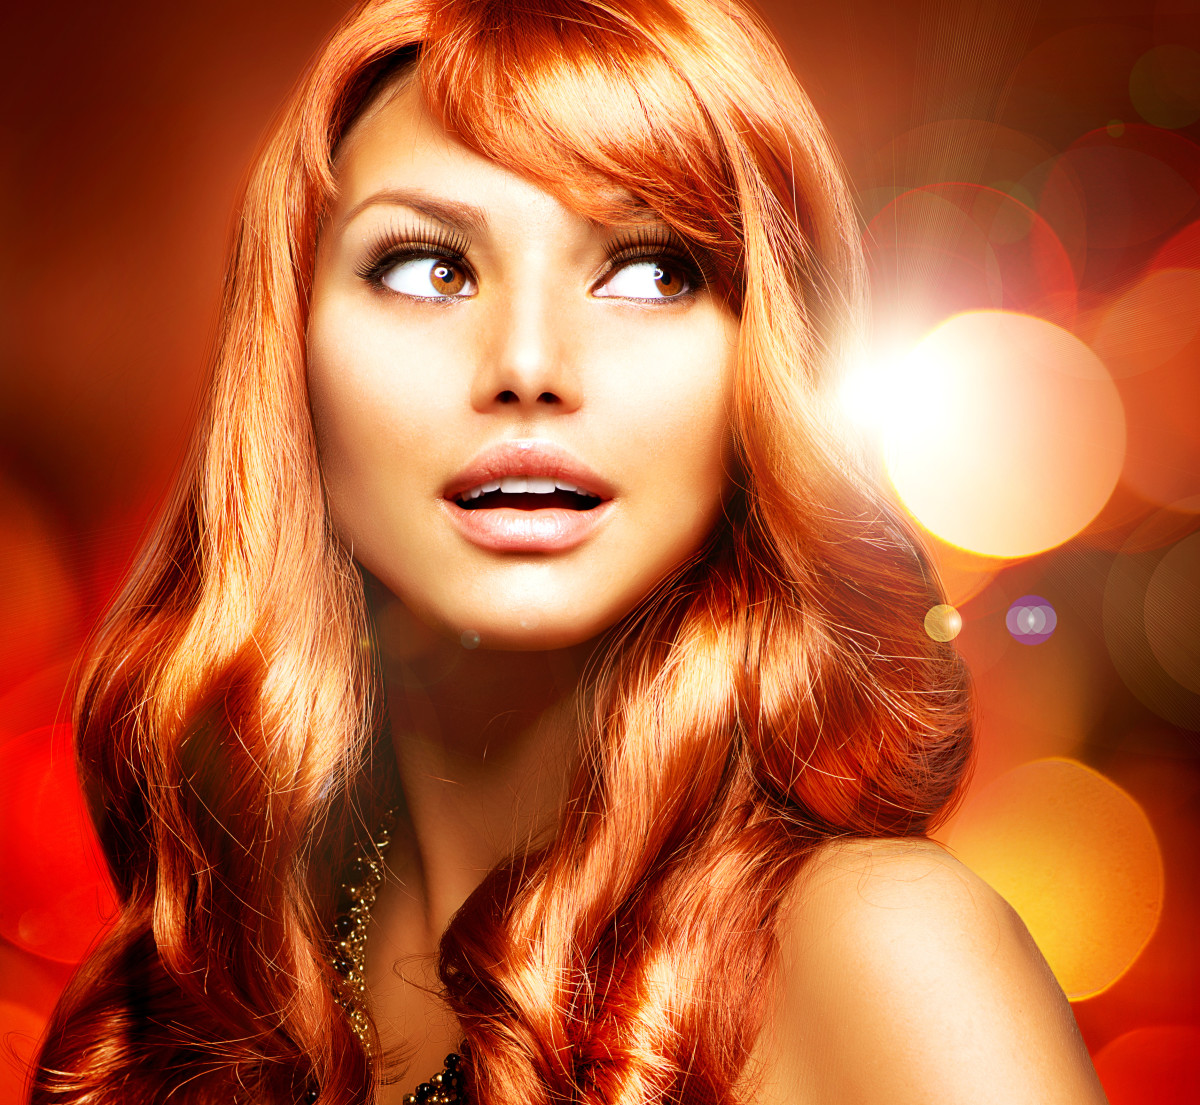 Beauty tips hubpages celebrity